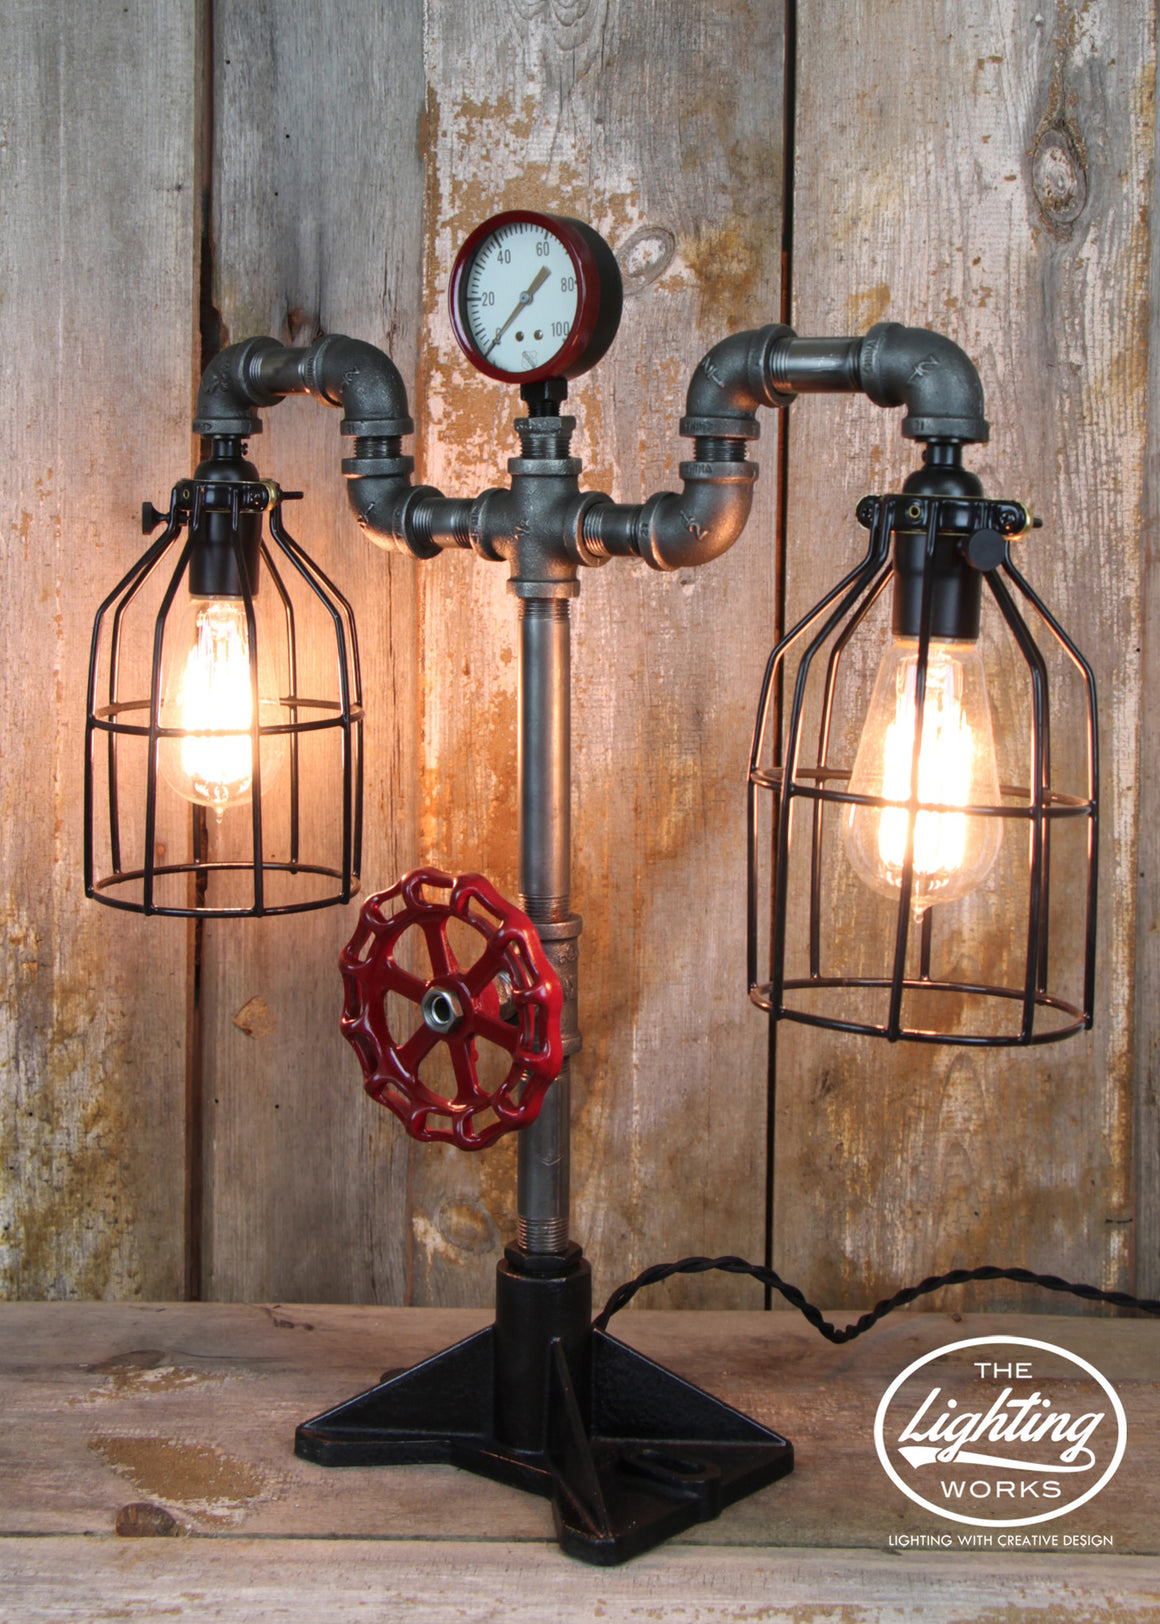 Steampunk Industrial Lamp with Dual Edison Lights #52 - The Lighting Works